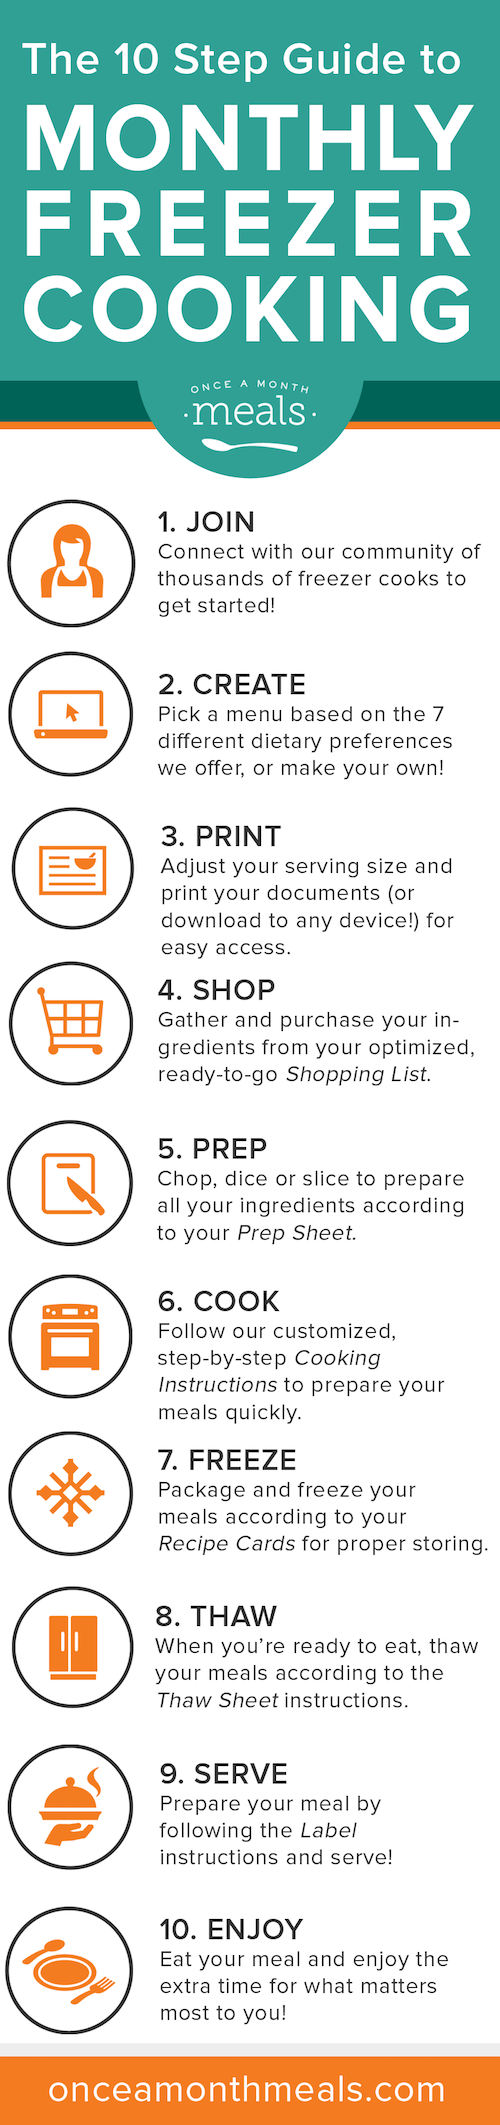 Get Started Freezer Cooking with the 10 Step Guide Infographic